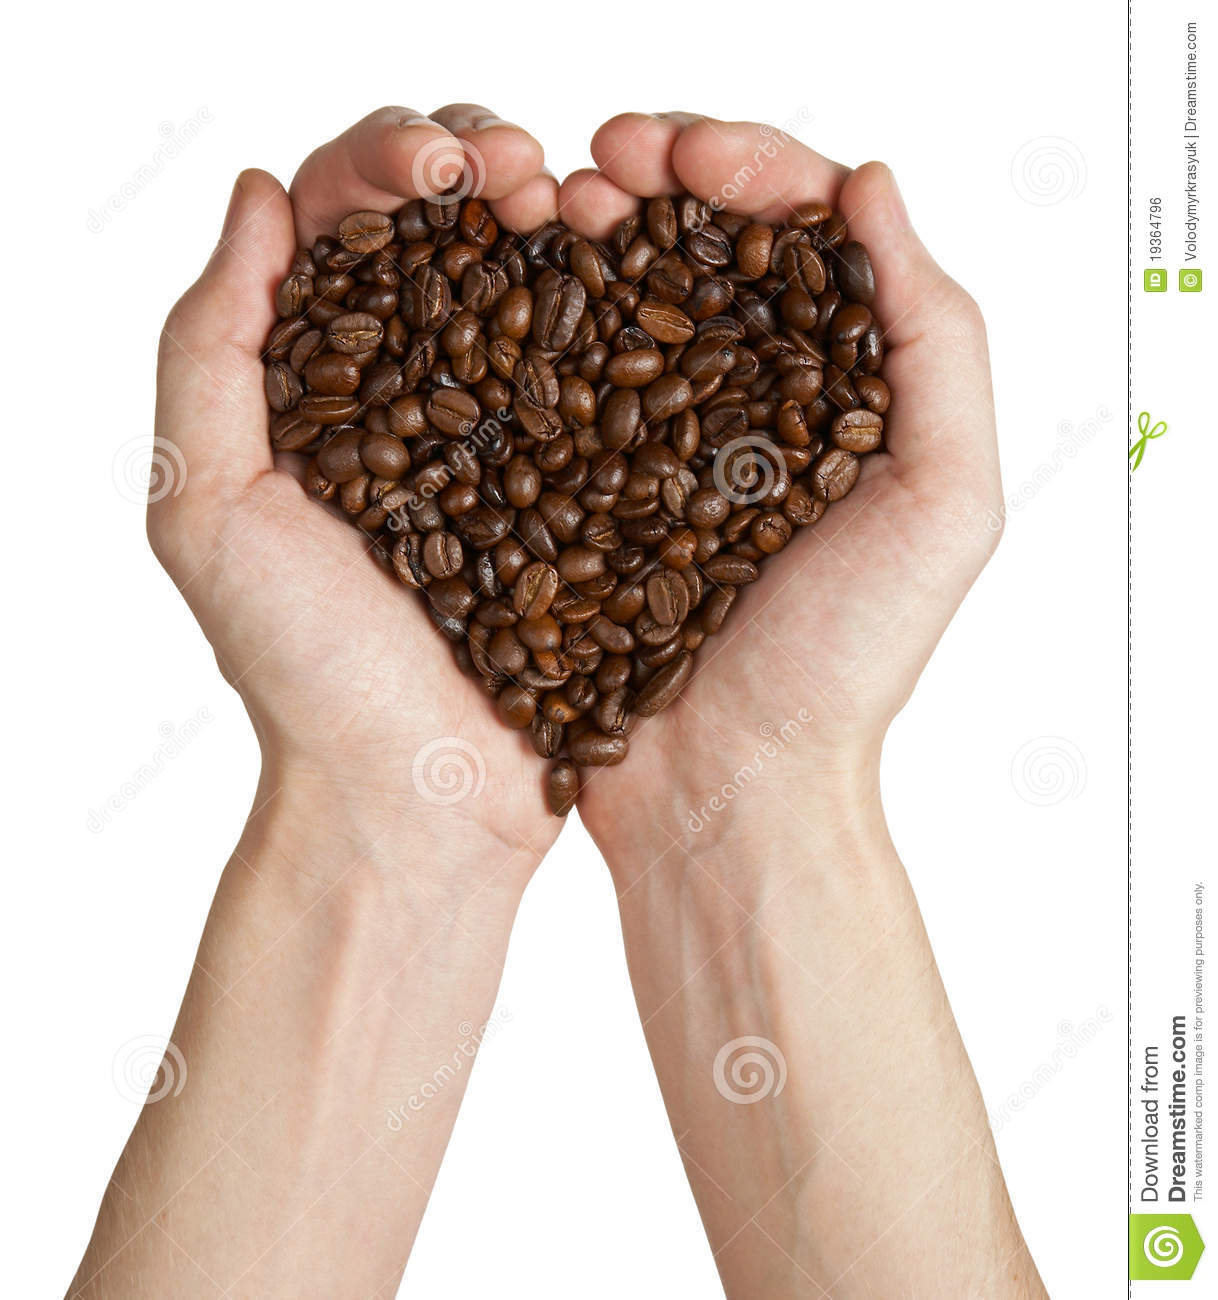 Heart shape made from coffee beans in hands